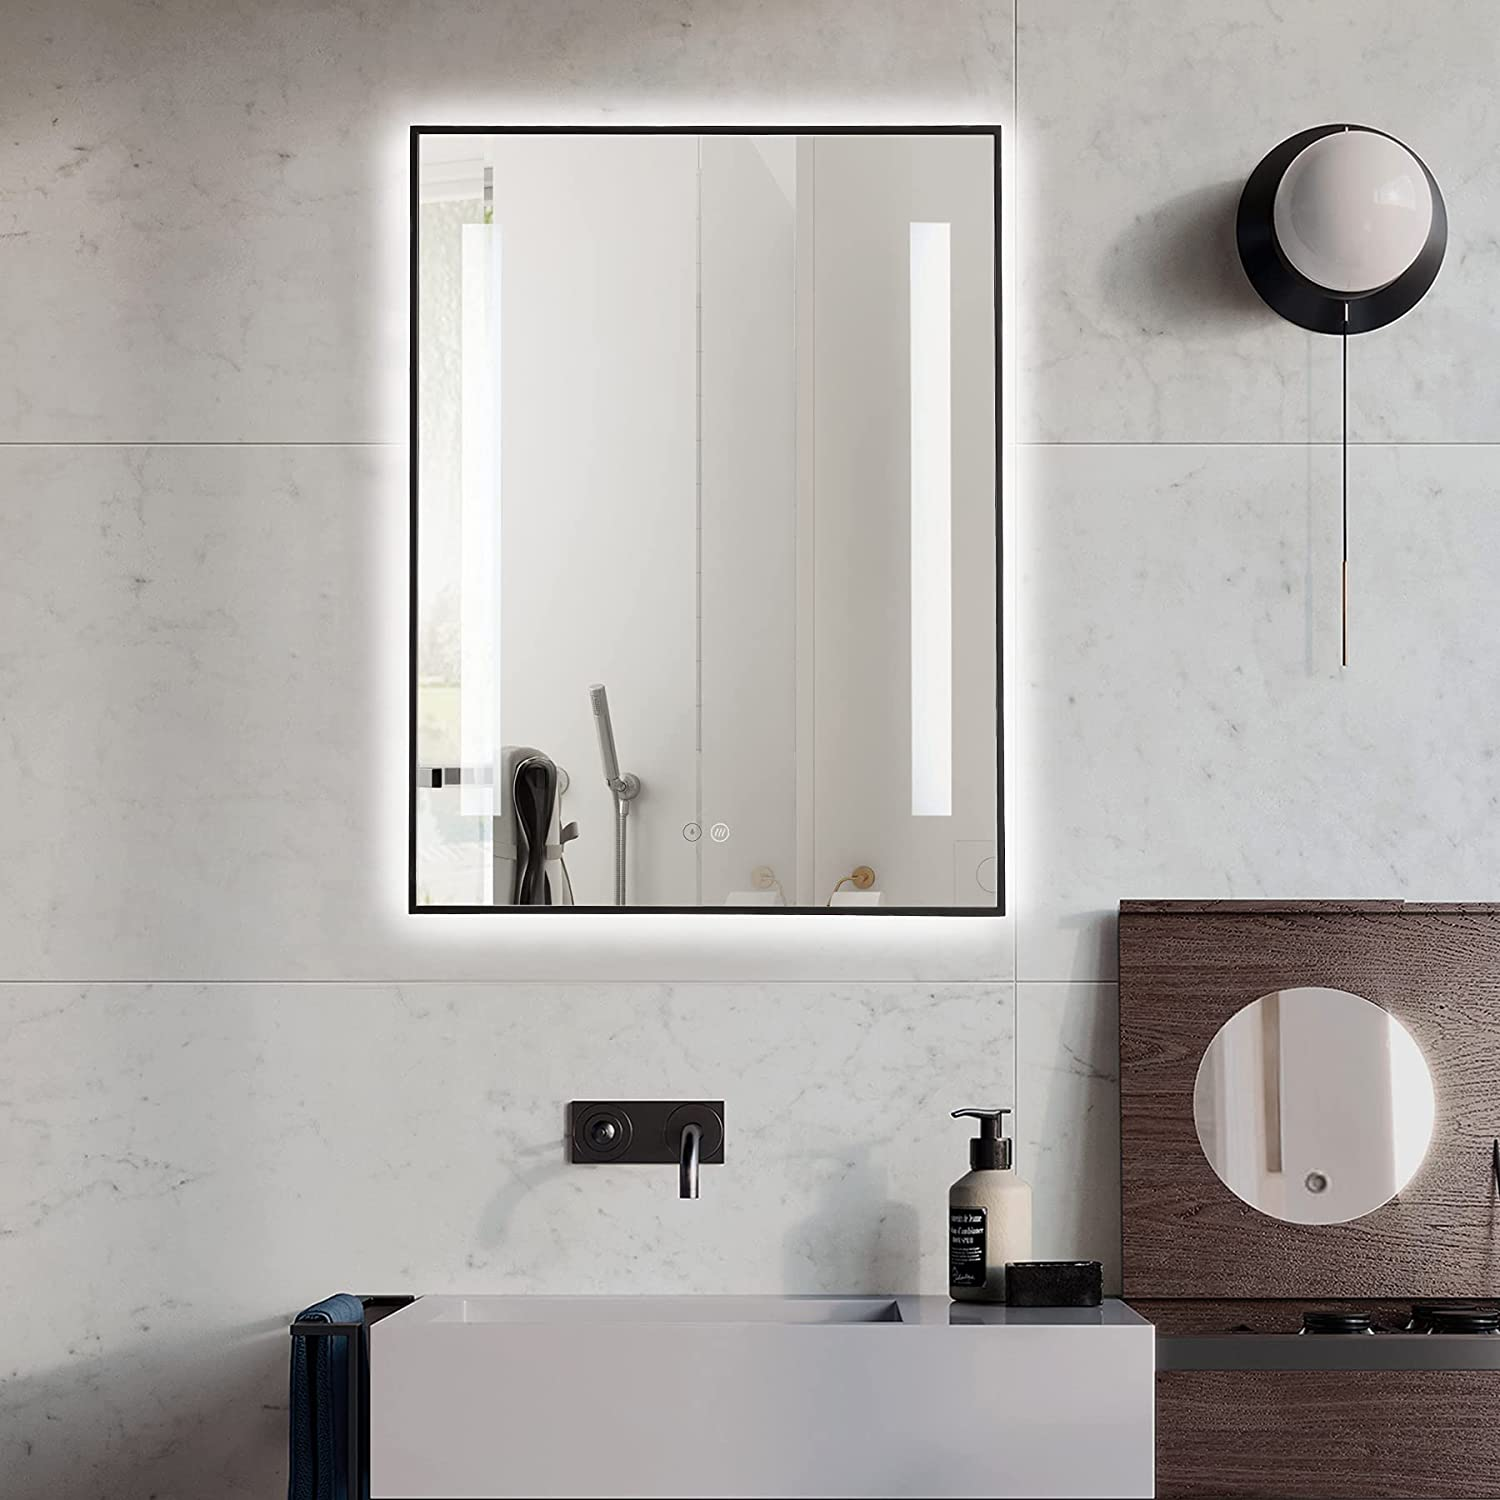 Mirrorons 24 x 32 Inch 2021 Trust LED Mounted Bathroom Mirror Wall Lighted